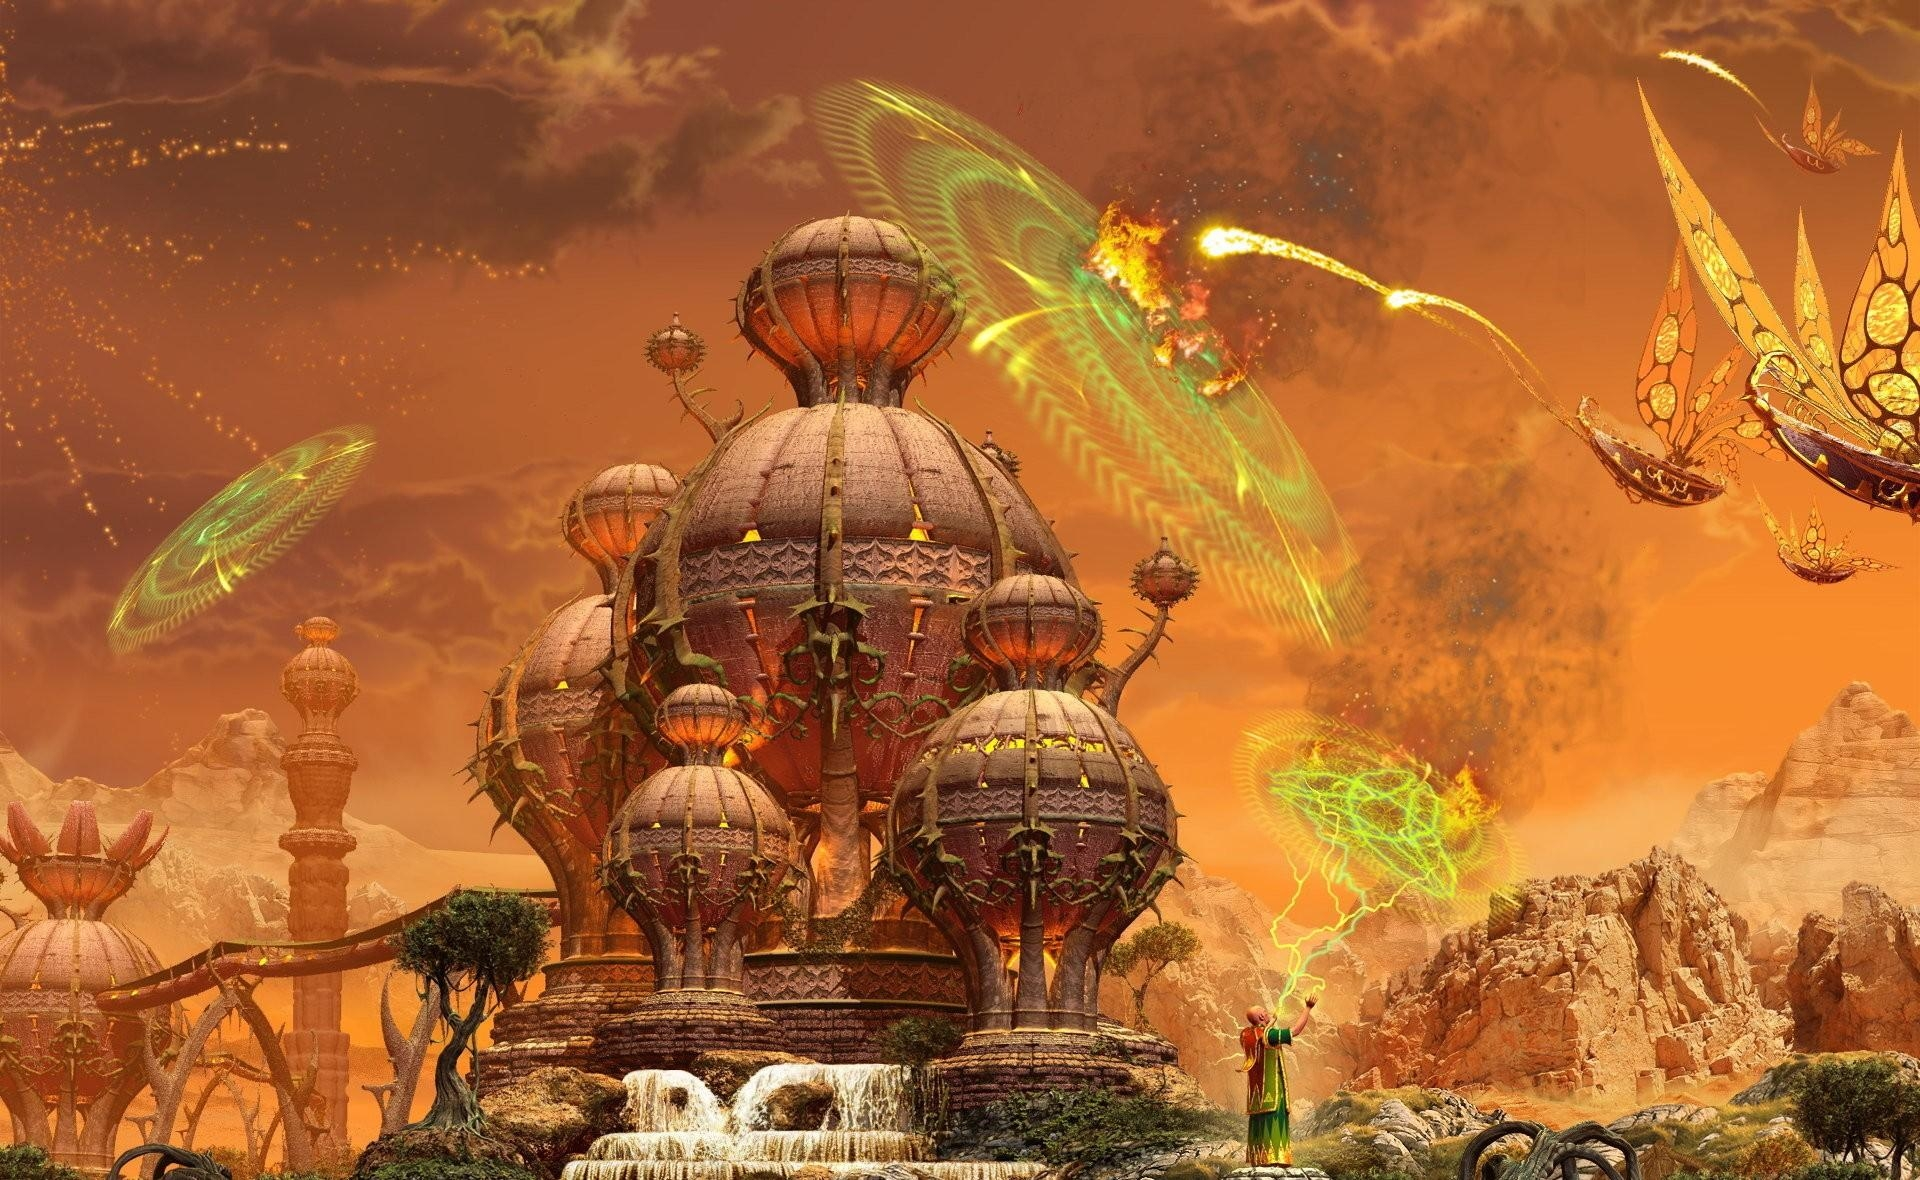 134743 download wallpaper Fantasy, Lock, Ships, Flight, Attack, Magic, Protection screensavers and pictures for free